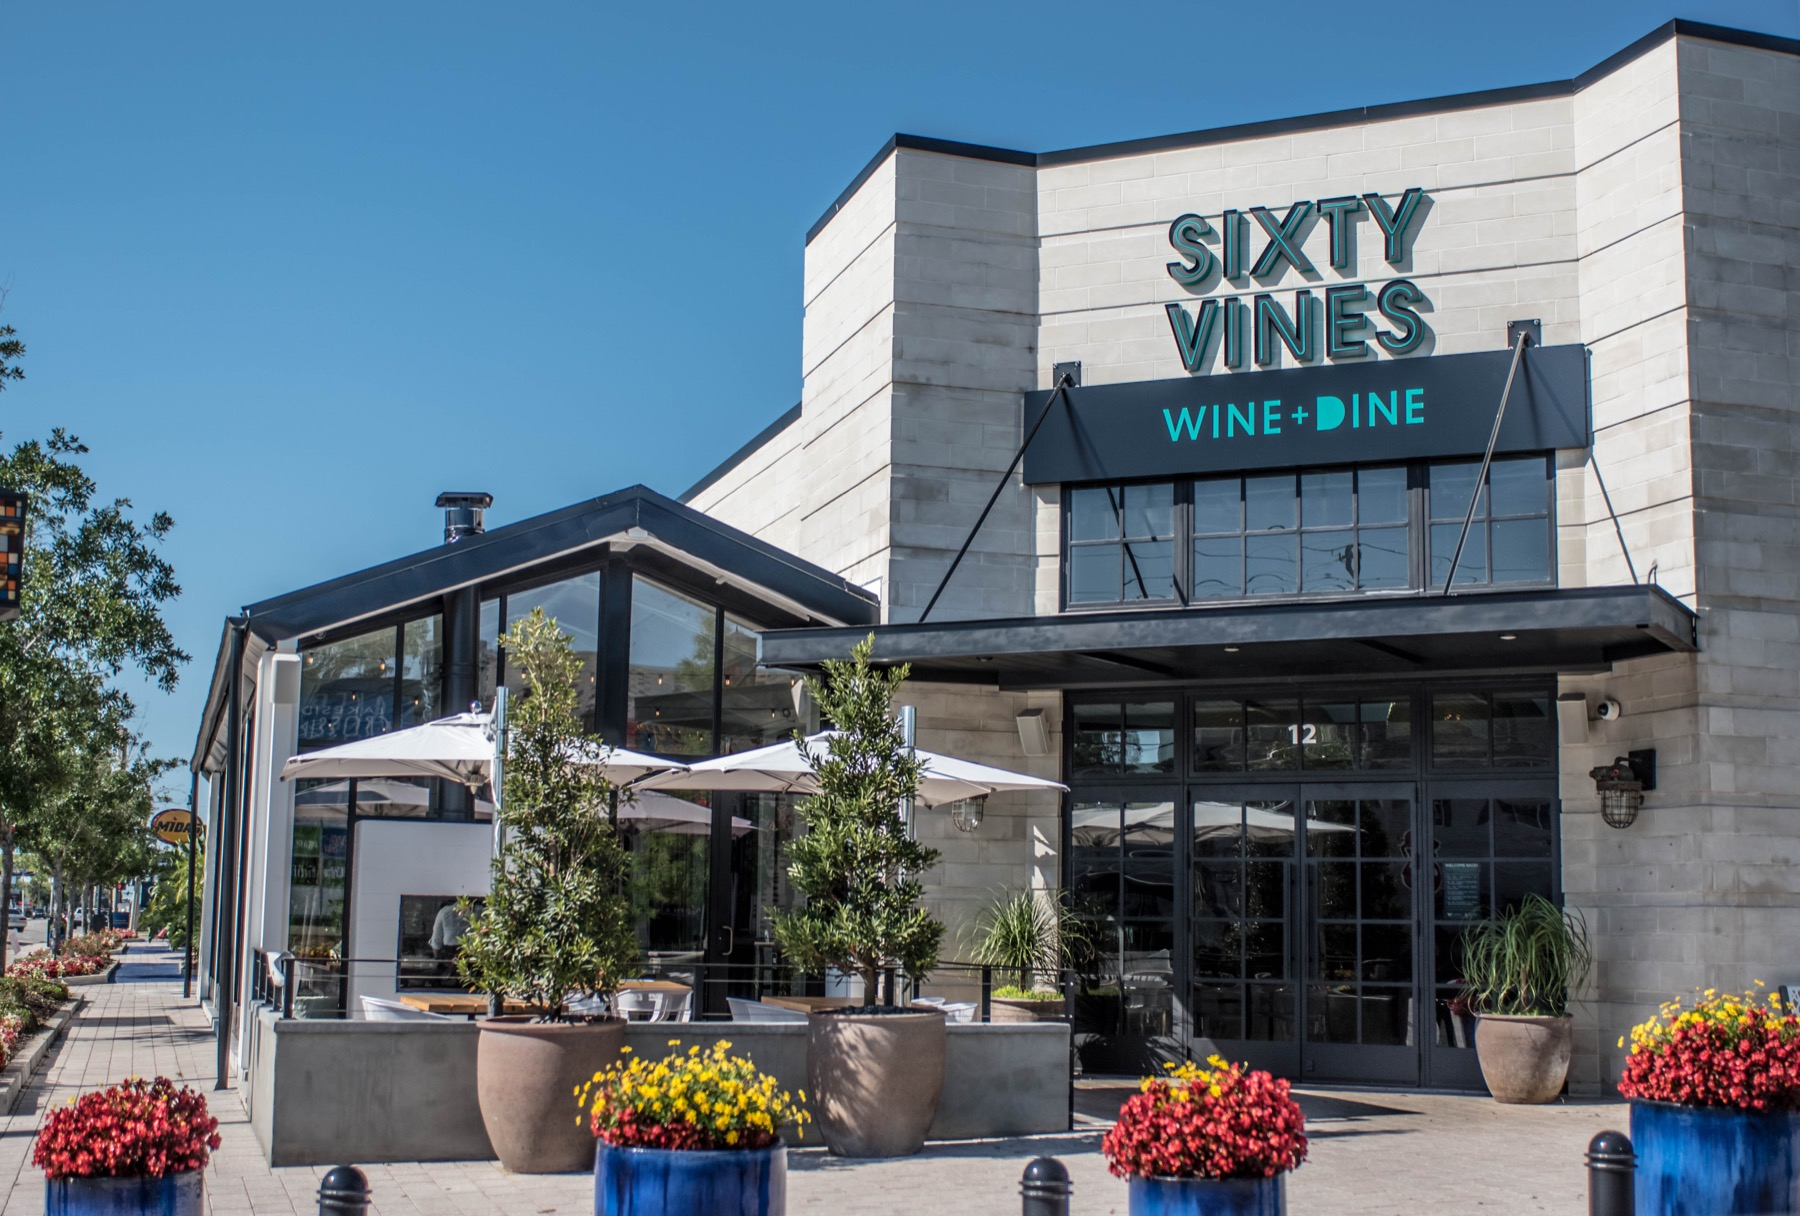 NSixty Vines, located on Orlando Ave. In Winter Park, Florida